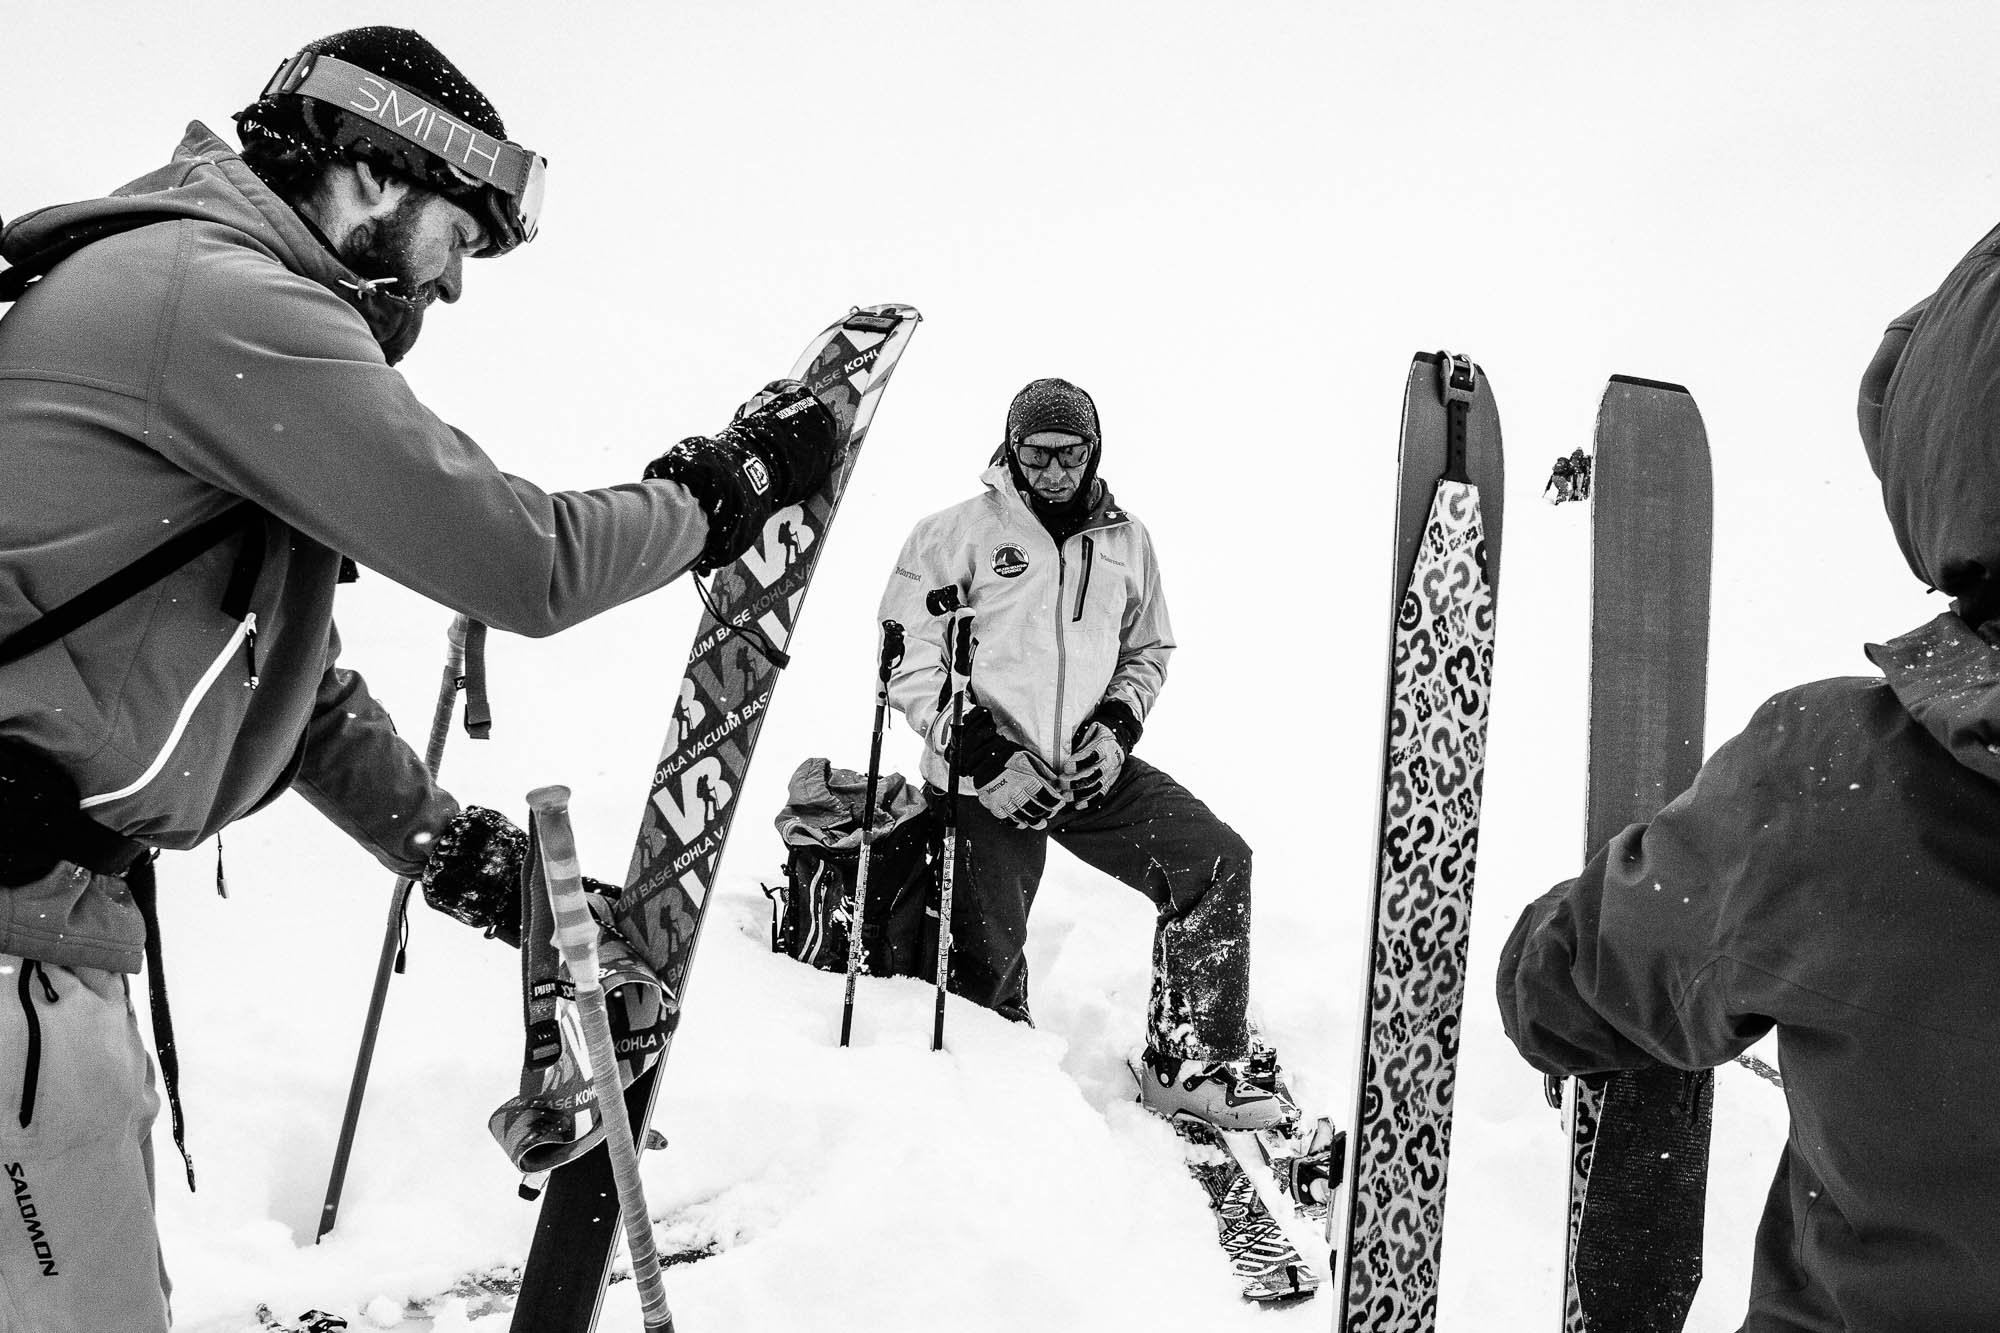 Ruedi Beglinger guides his clients through a blanket of whiteness with decades of experience. PHOTO: Ryan Creary